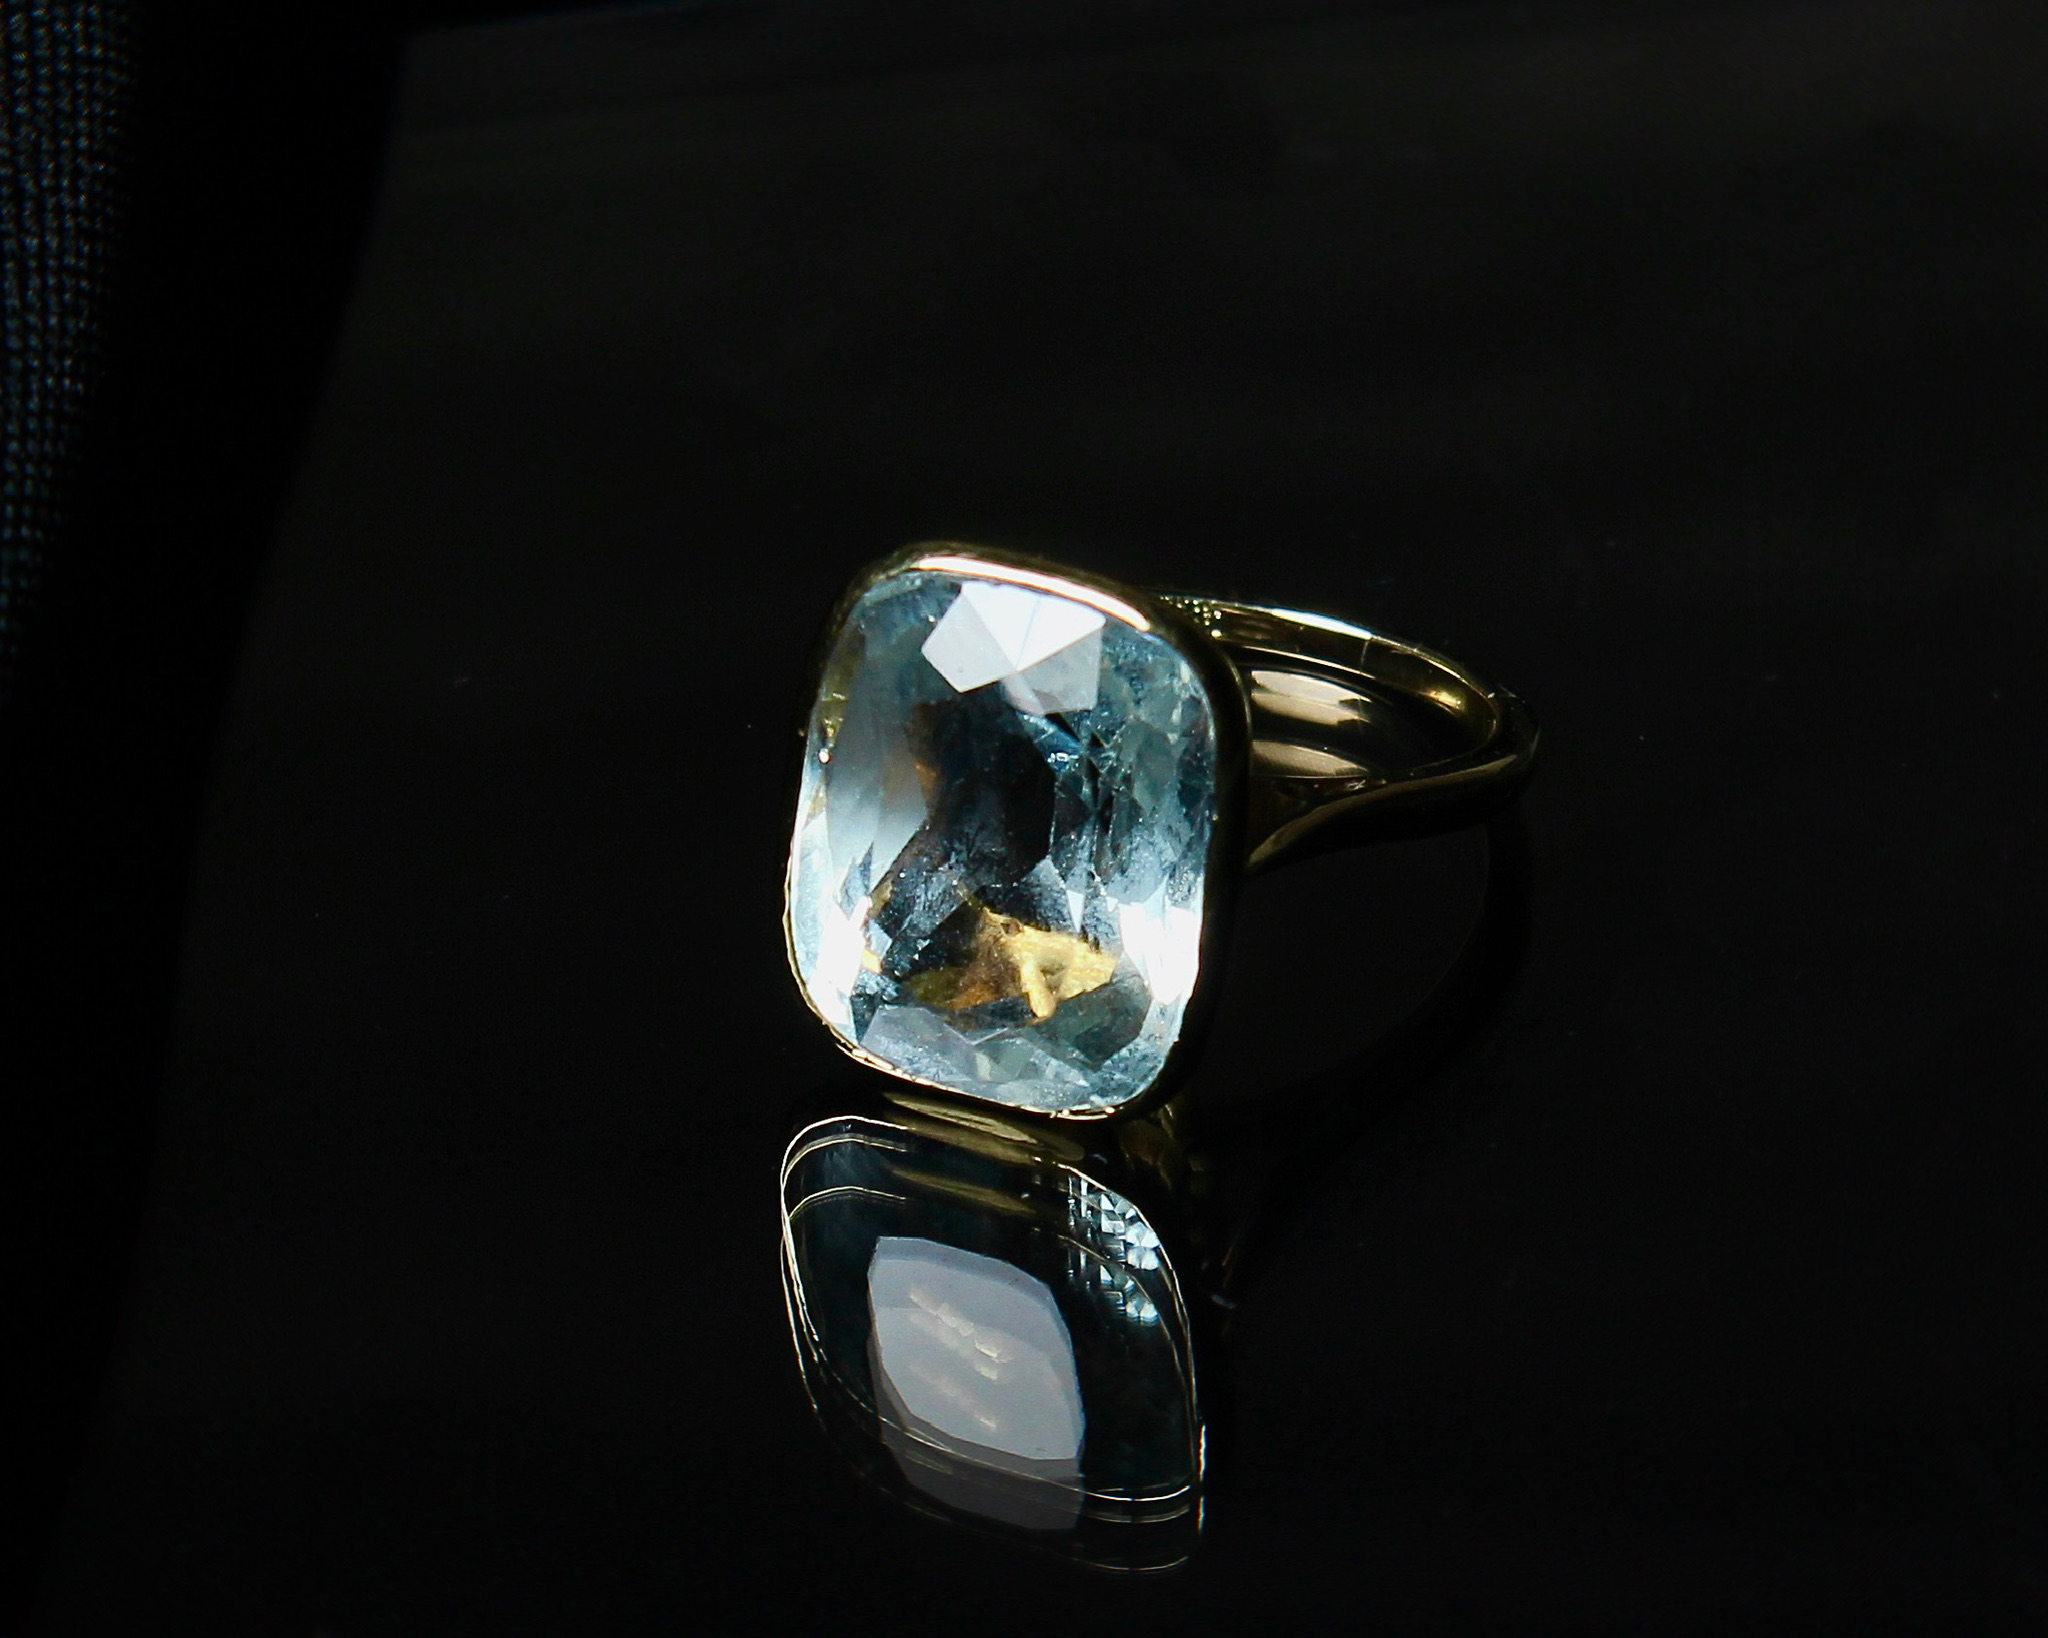 Lot 10 - Vintage Aquamarine Ring, 1970s